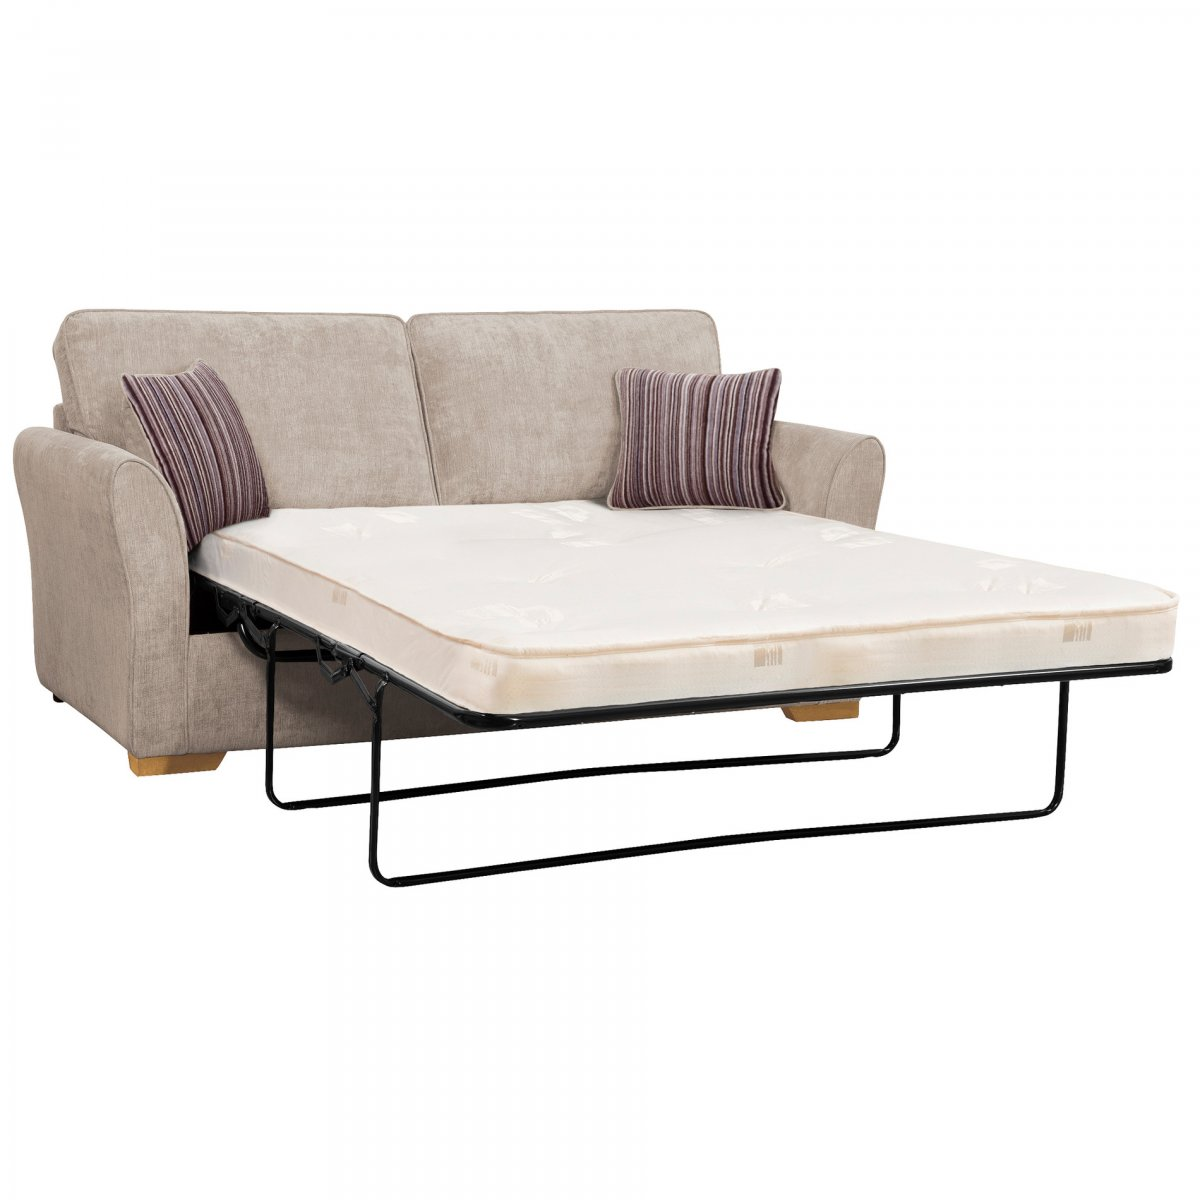 Jasmine 3 seater sofa bed with standard mattress in silver for Sofa bed 180cm